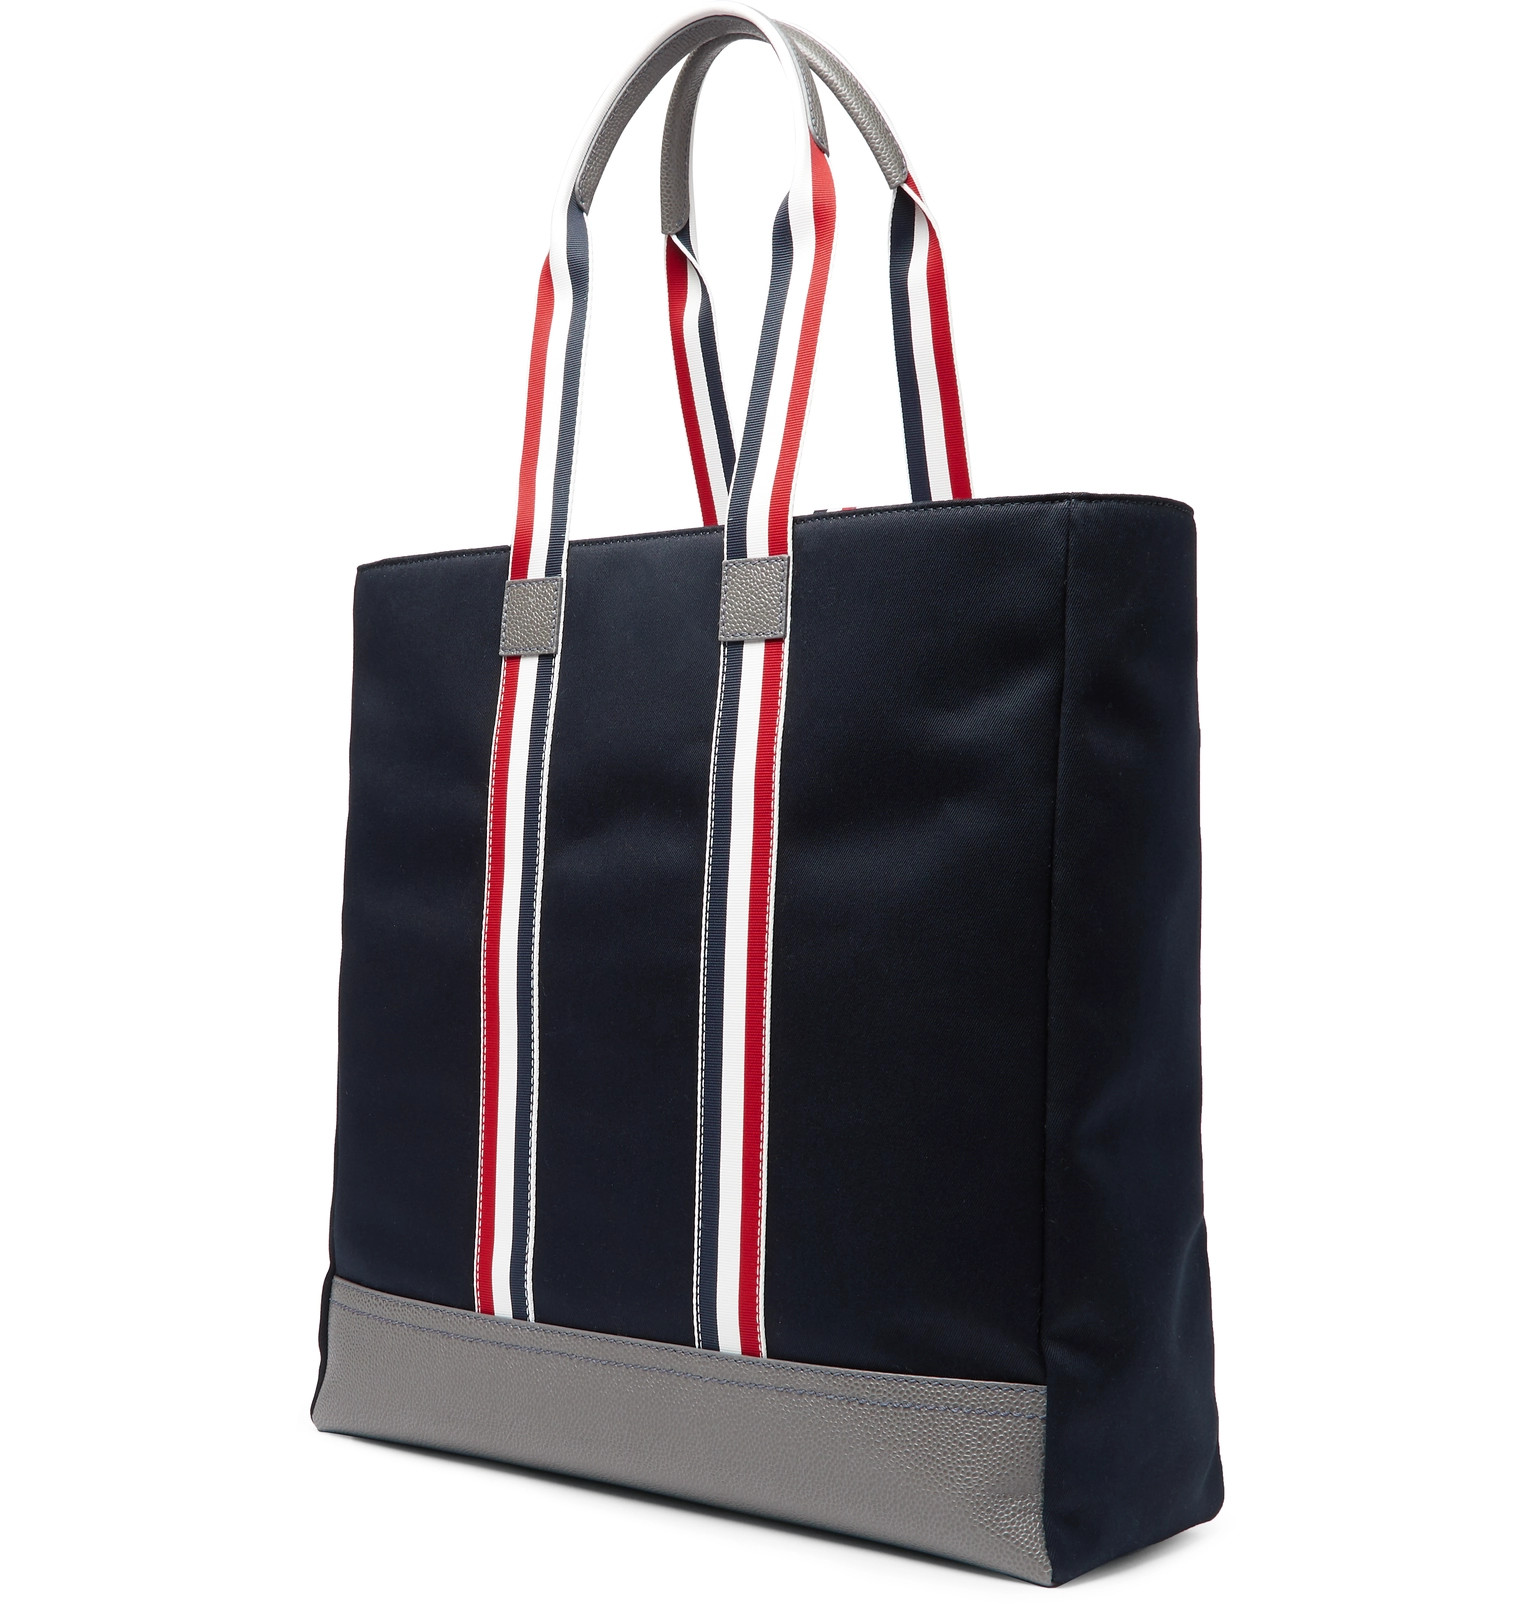 9a8d53f1b296 Thom Browne - Leather-Trimmed Canvas Tote Bag